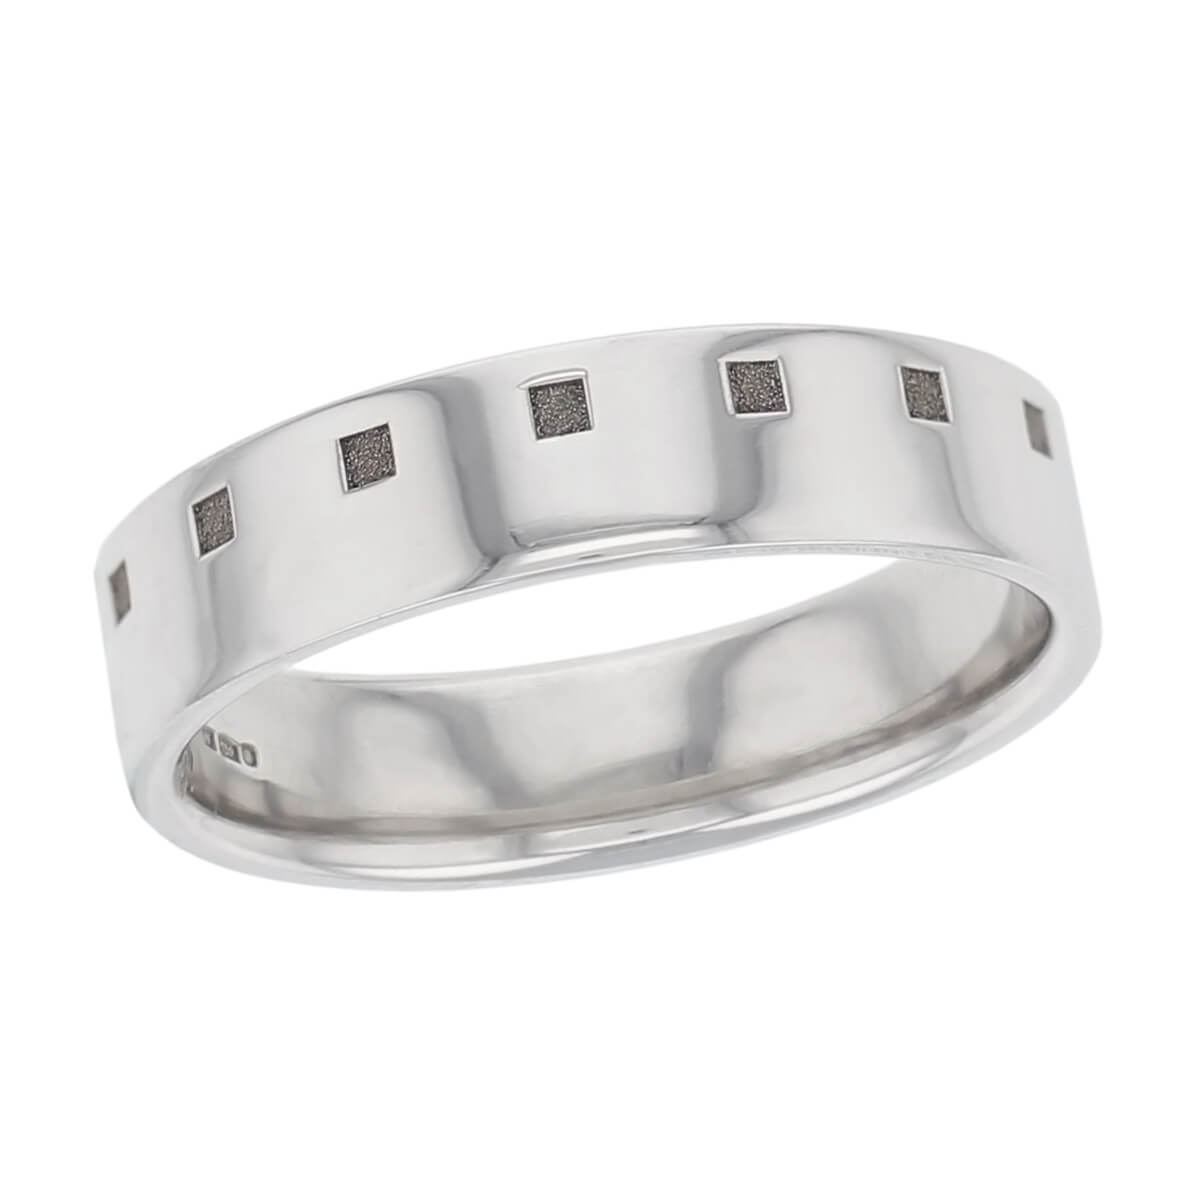 line of squares off centre polished wedding ring pattern, men's, gentsp, made by Fallerattern